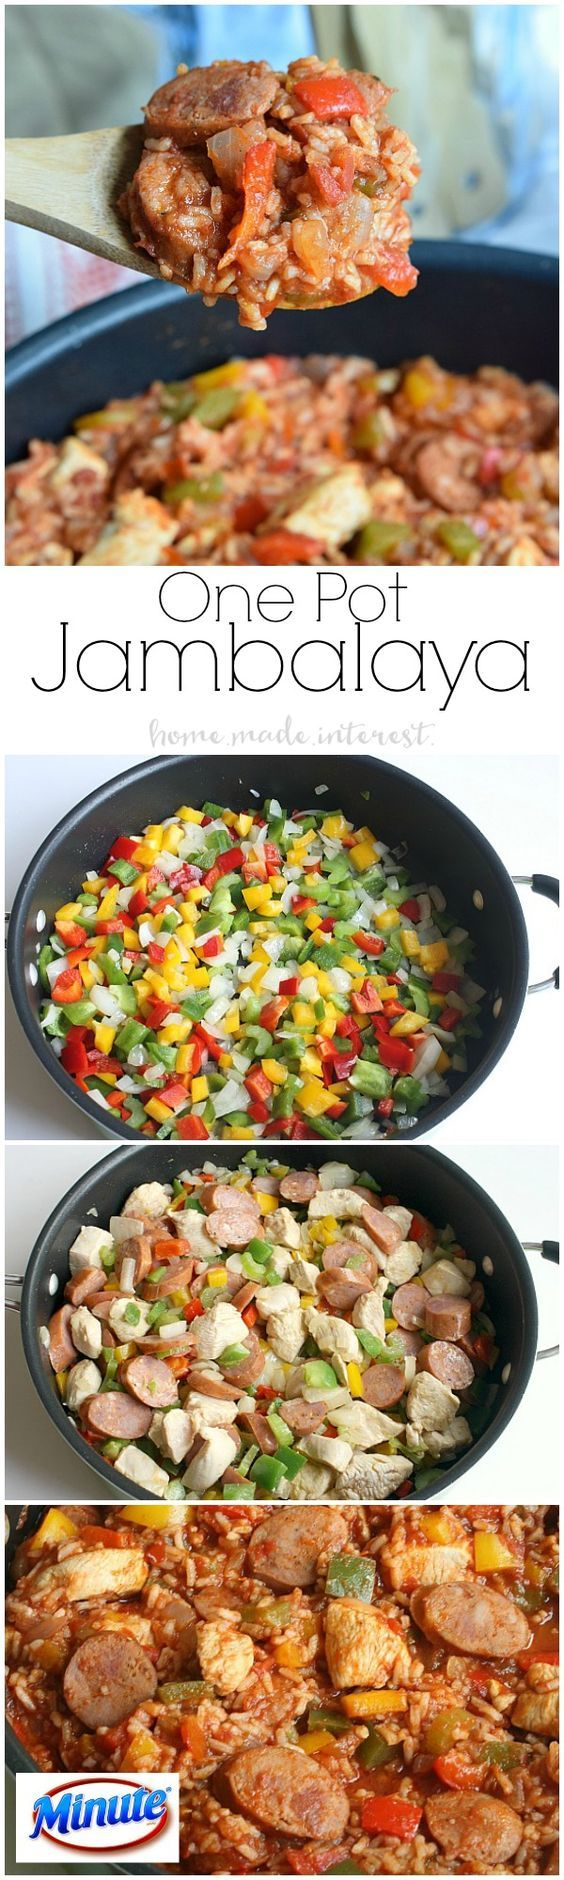 This Jambalaya recipe only takes one pot and 20 minutes! It is an easy weeknight recipe that the family will love. MealsWithMinute | AD